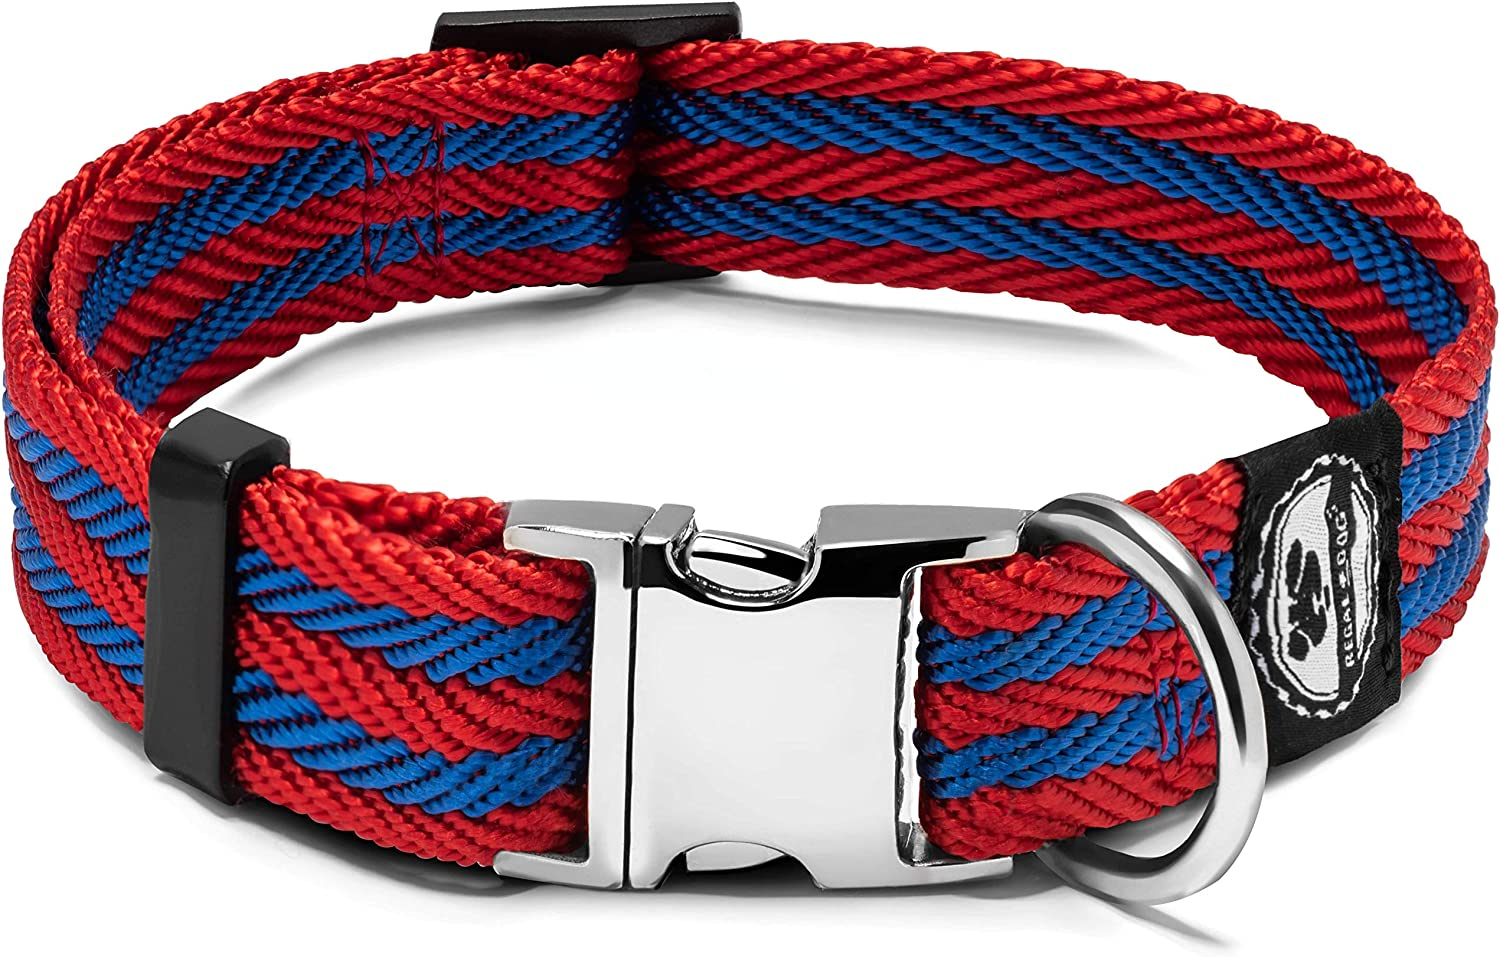 Pet Collar with Metal Buckle and D Ring | Durable Dog Collar with Reinforced Stitching and Nylon Webbing Adjustable Dog Collar to fit Small and Medium Dog or a Puppy